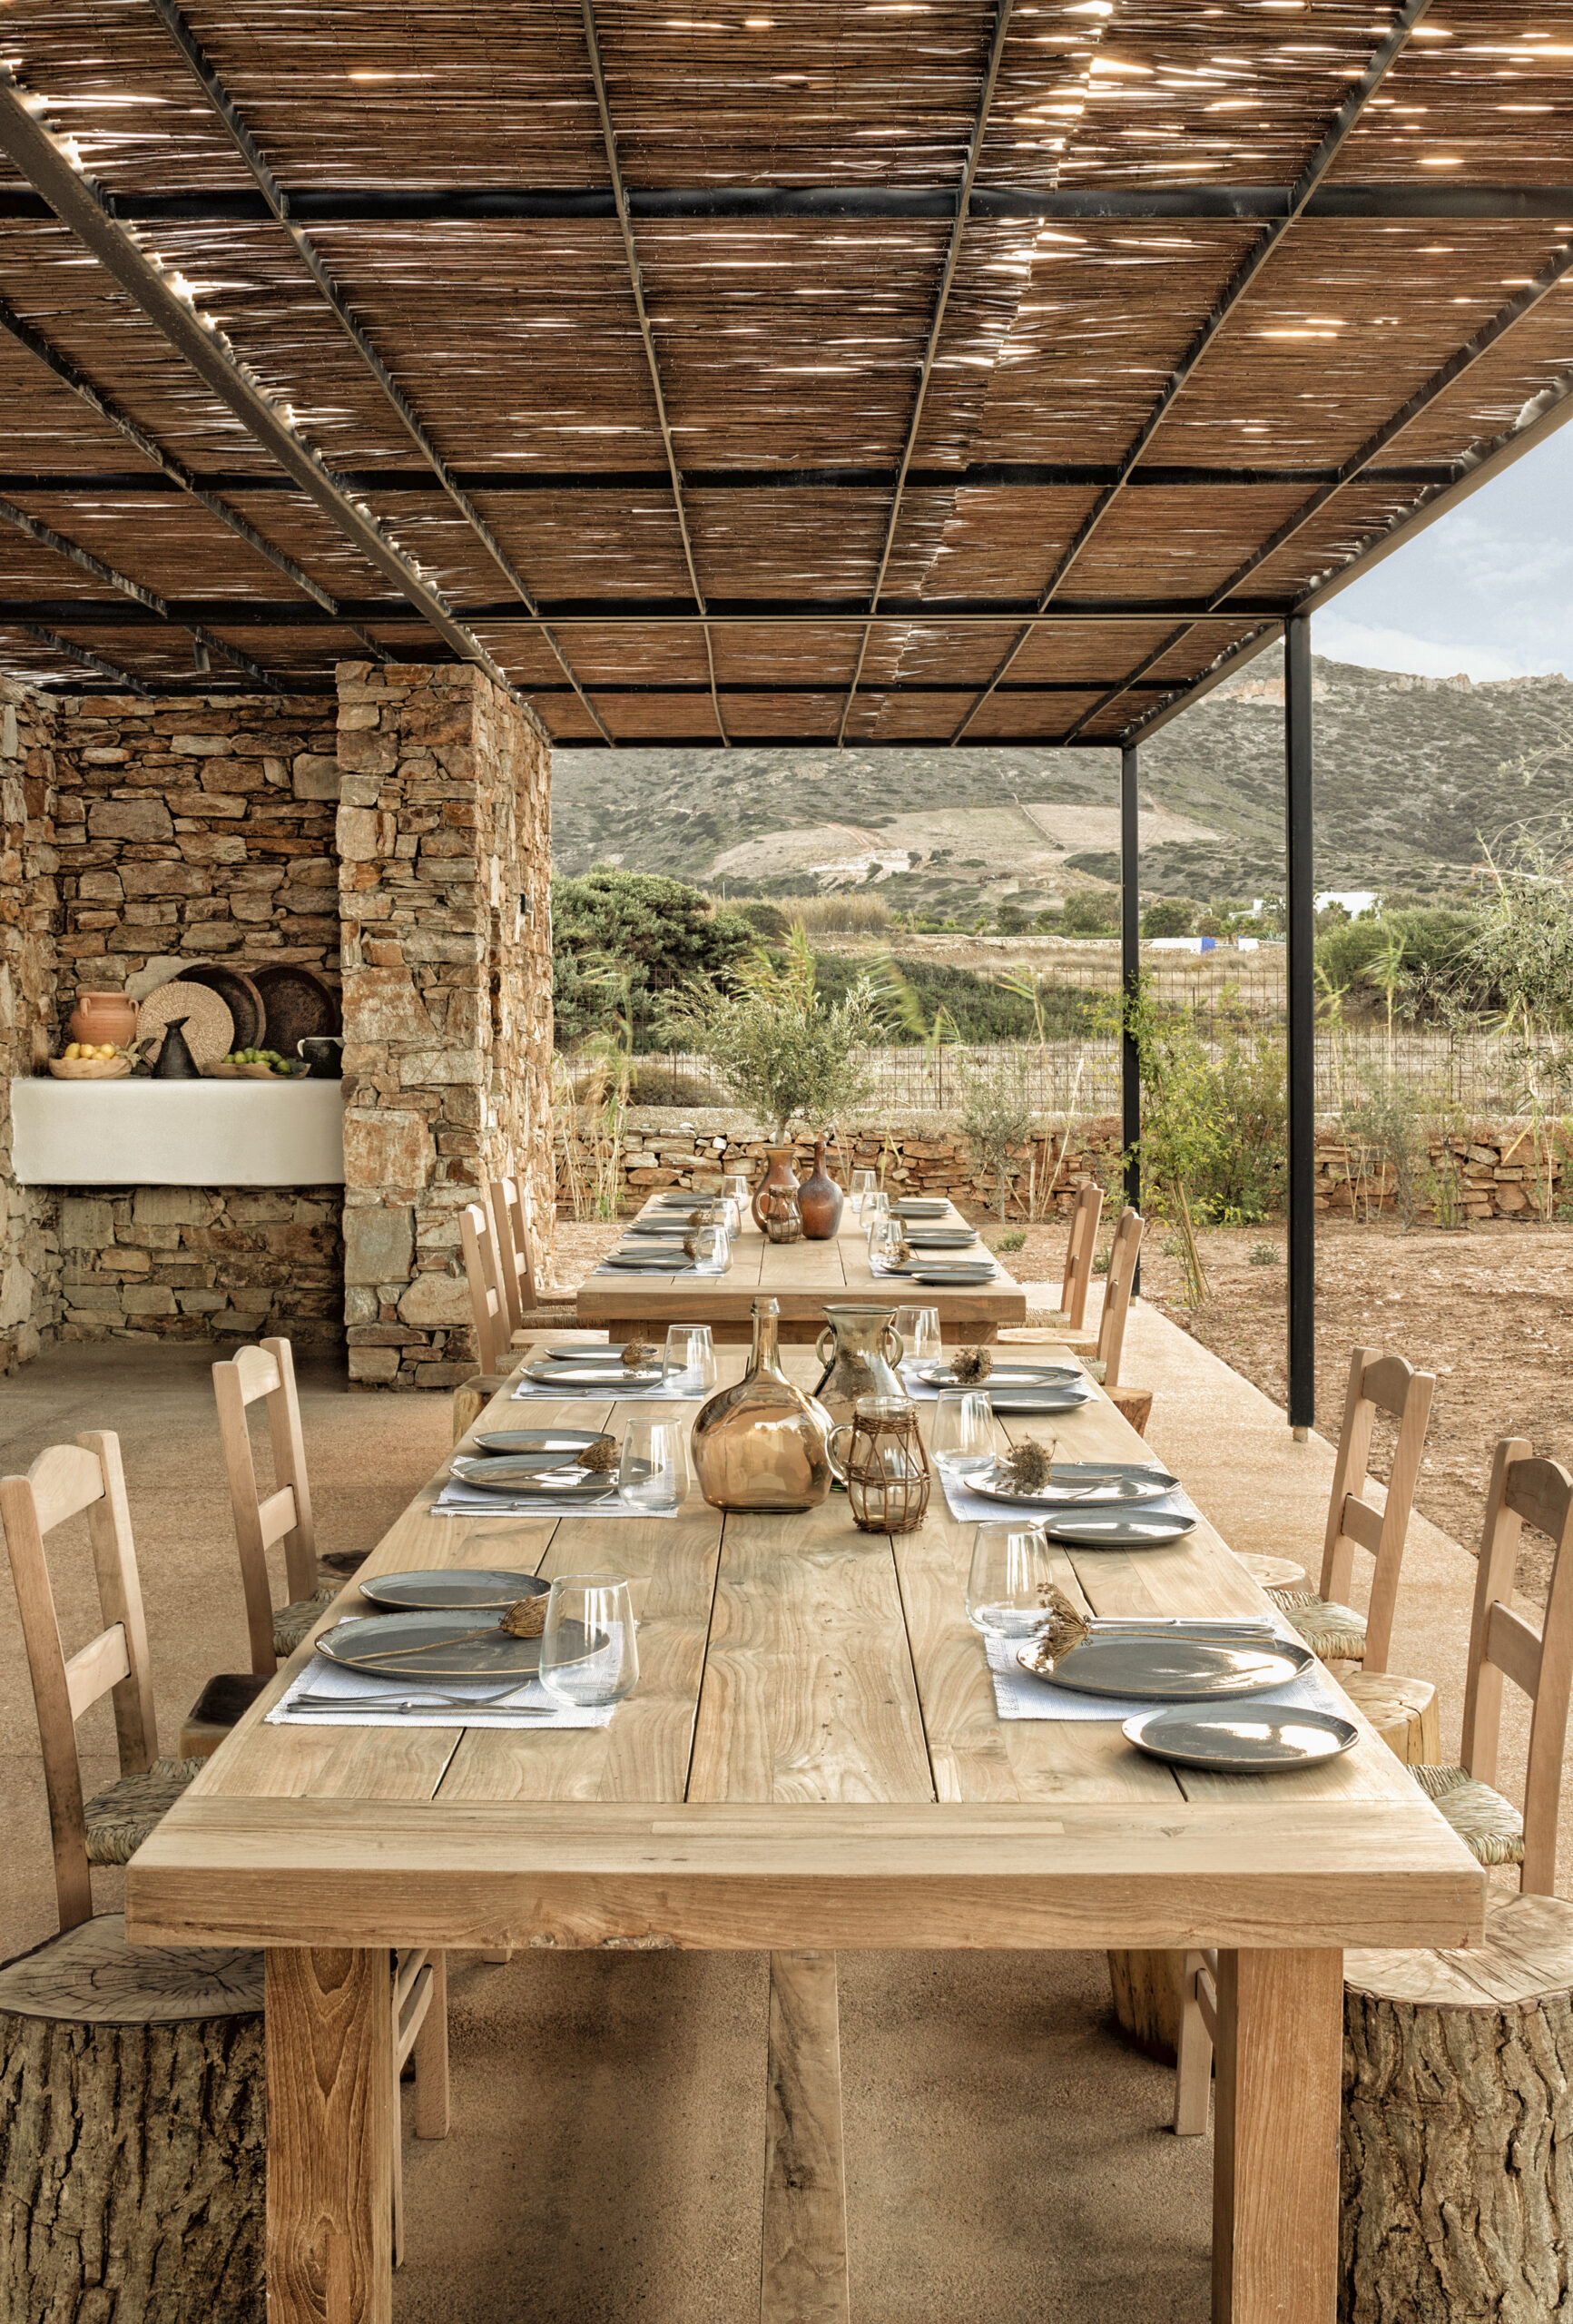 The Rooster farm communal table ©Yannis Rizomarkos